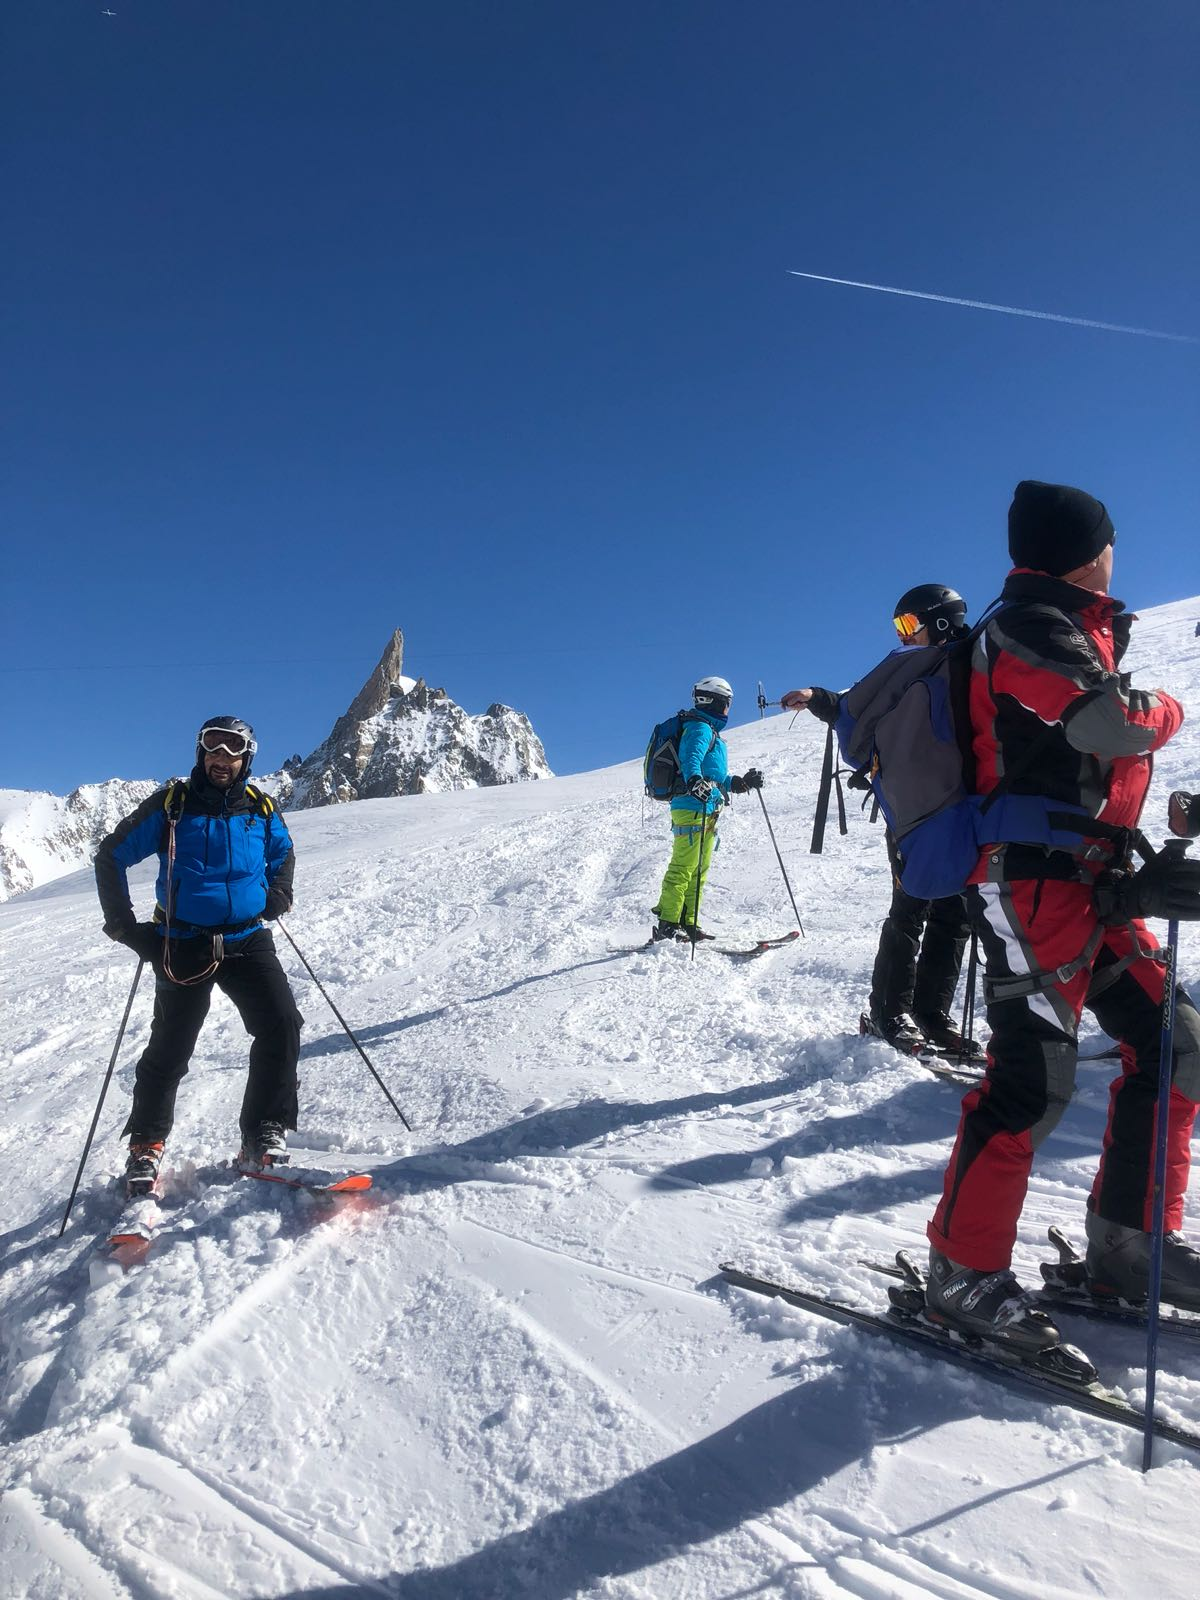 vallee blanche guide alpine proup (35)